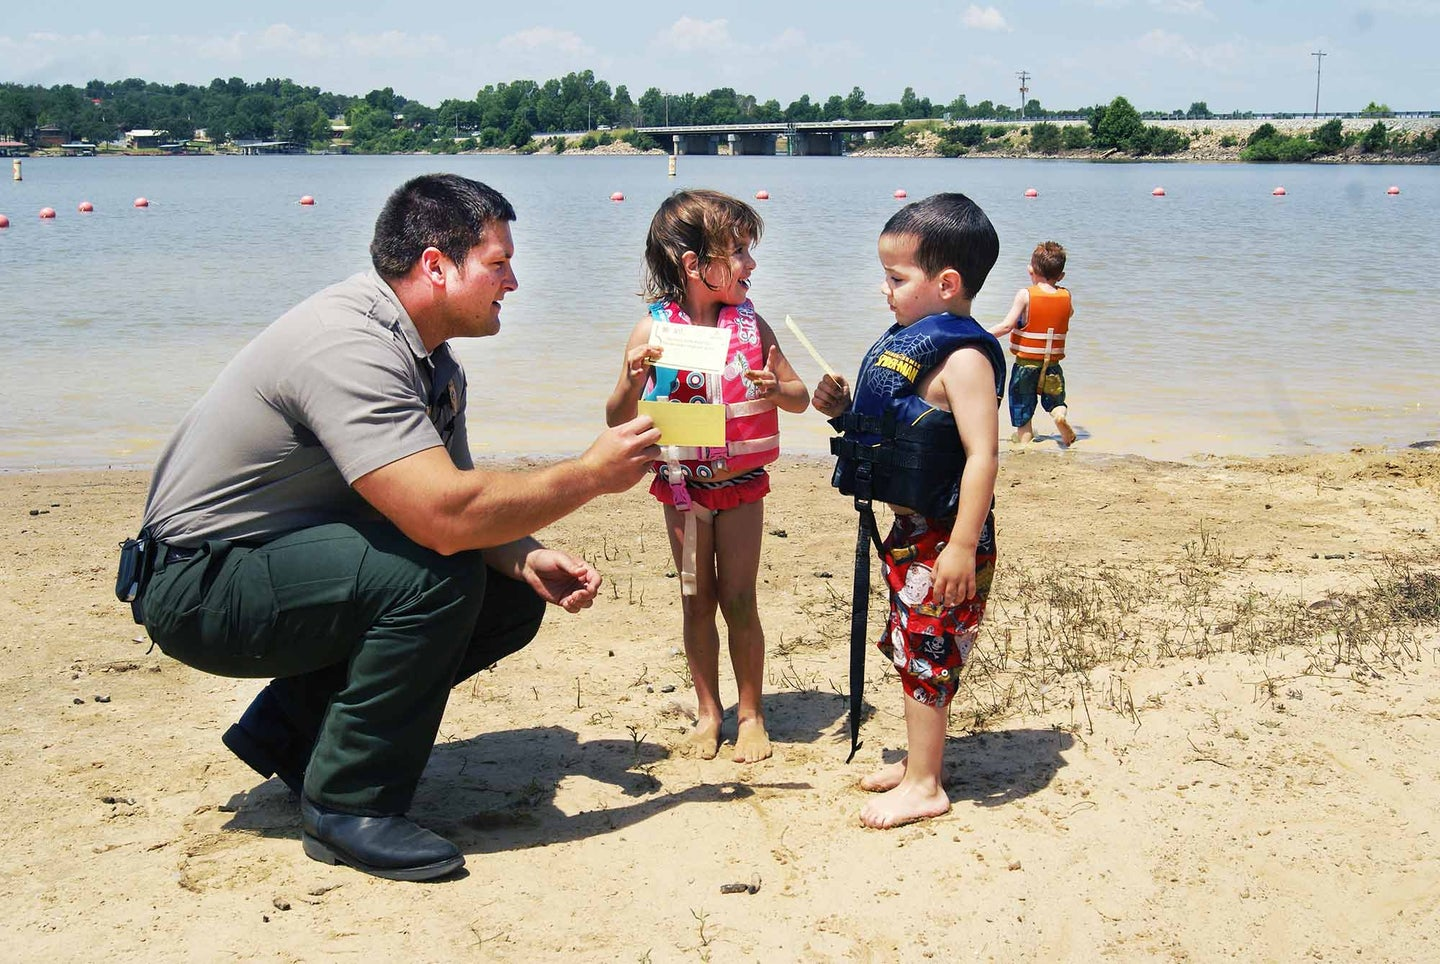 Man on a beach with two young children